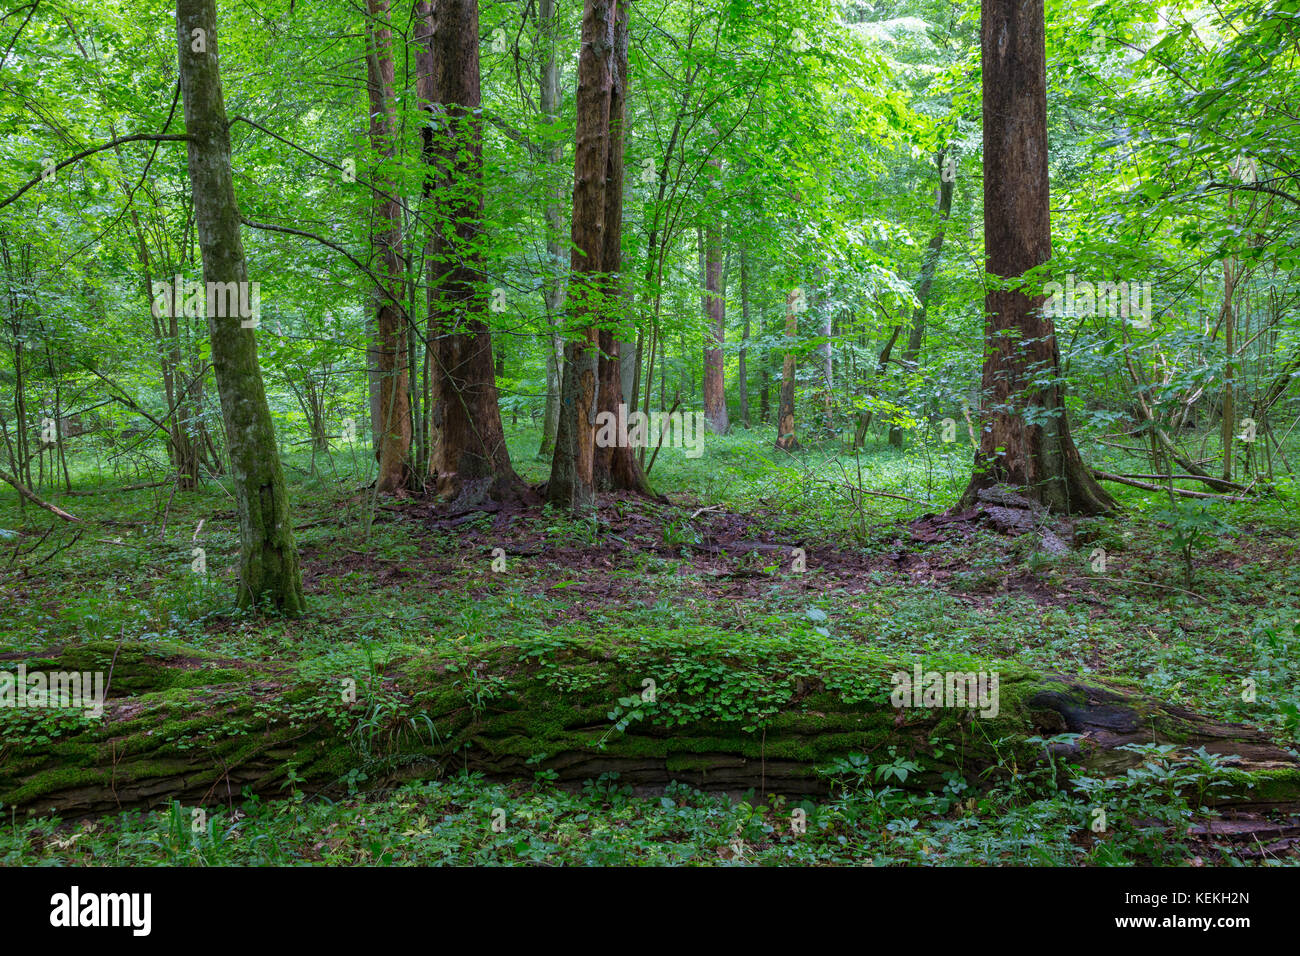 Bark-less dead spruces in old summertime deciduous stand,Bialowieza Forest,Poland,Europe - Stock Image